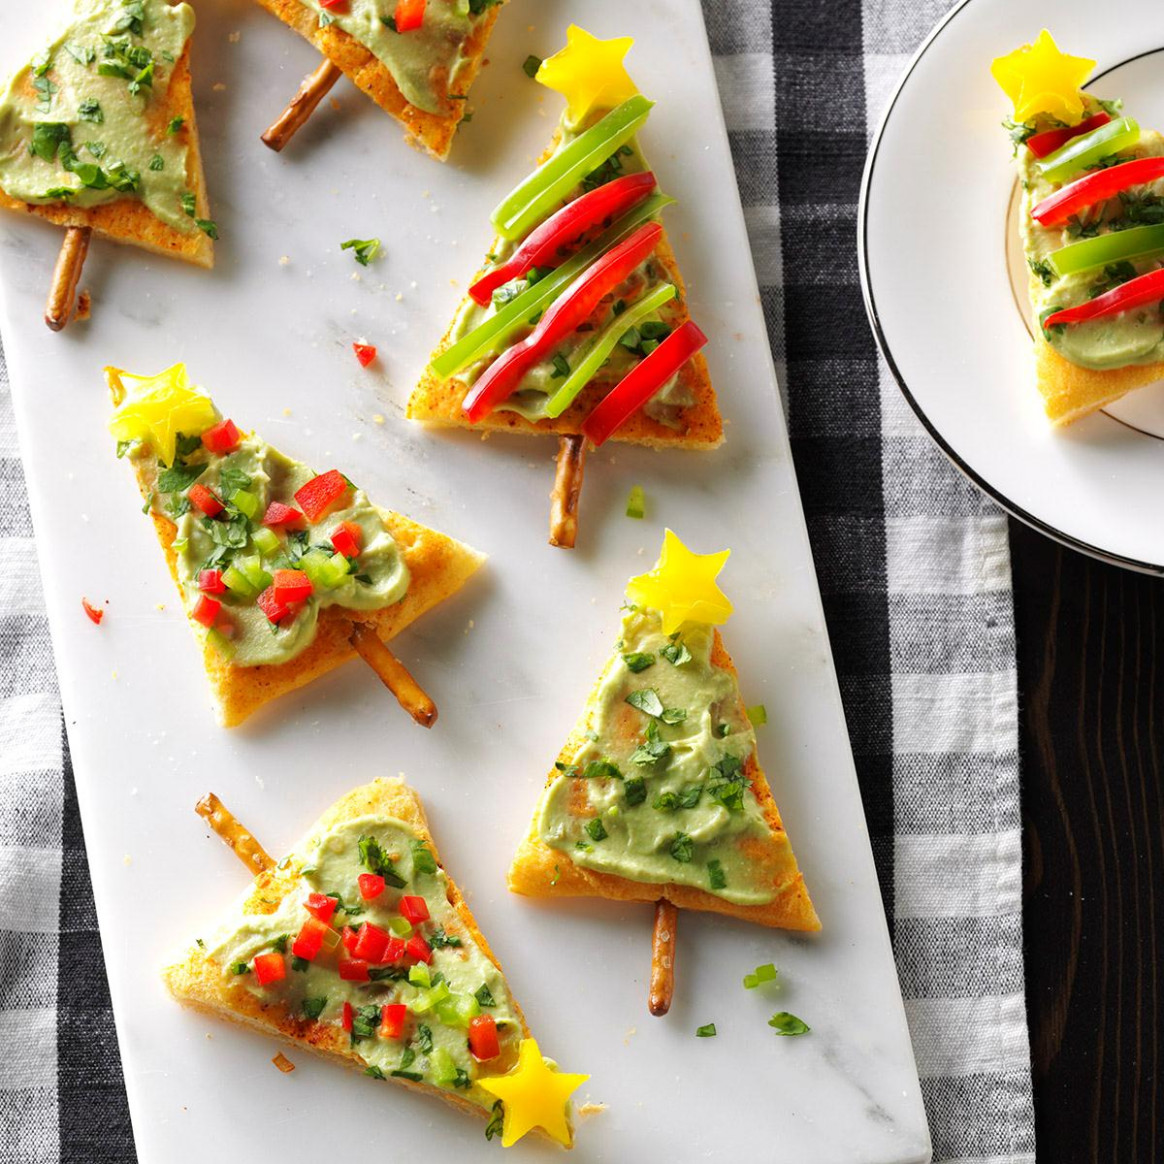 Festive Guacamole Appetizers - Xmas Dinner Starters Recipes